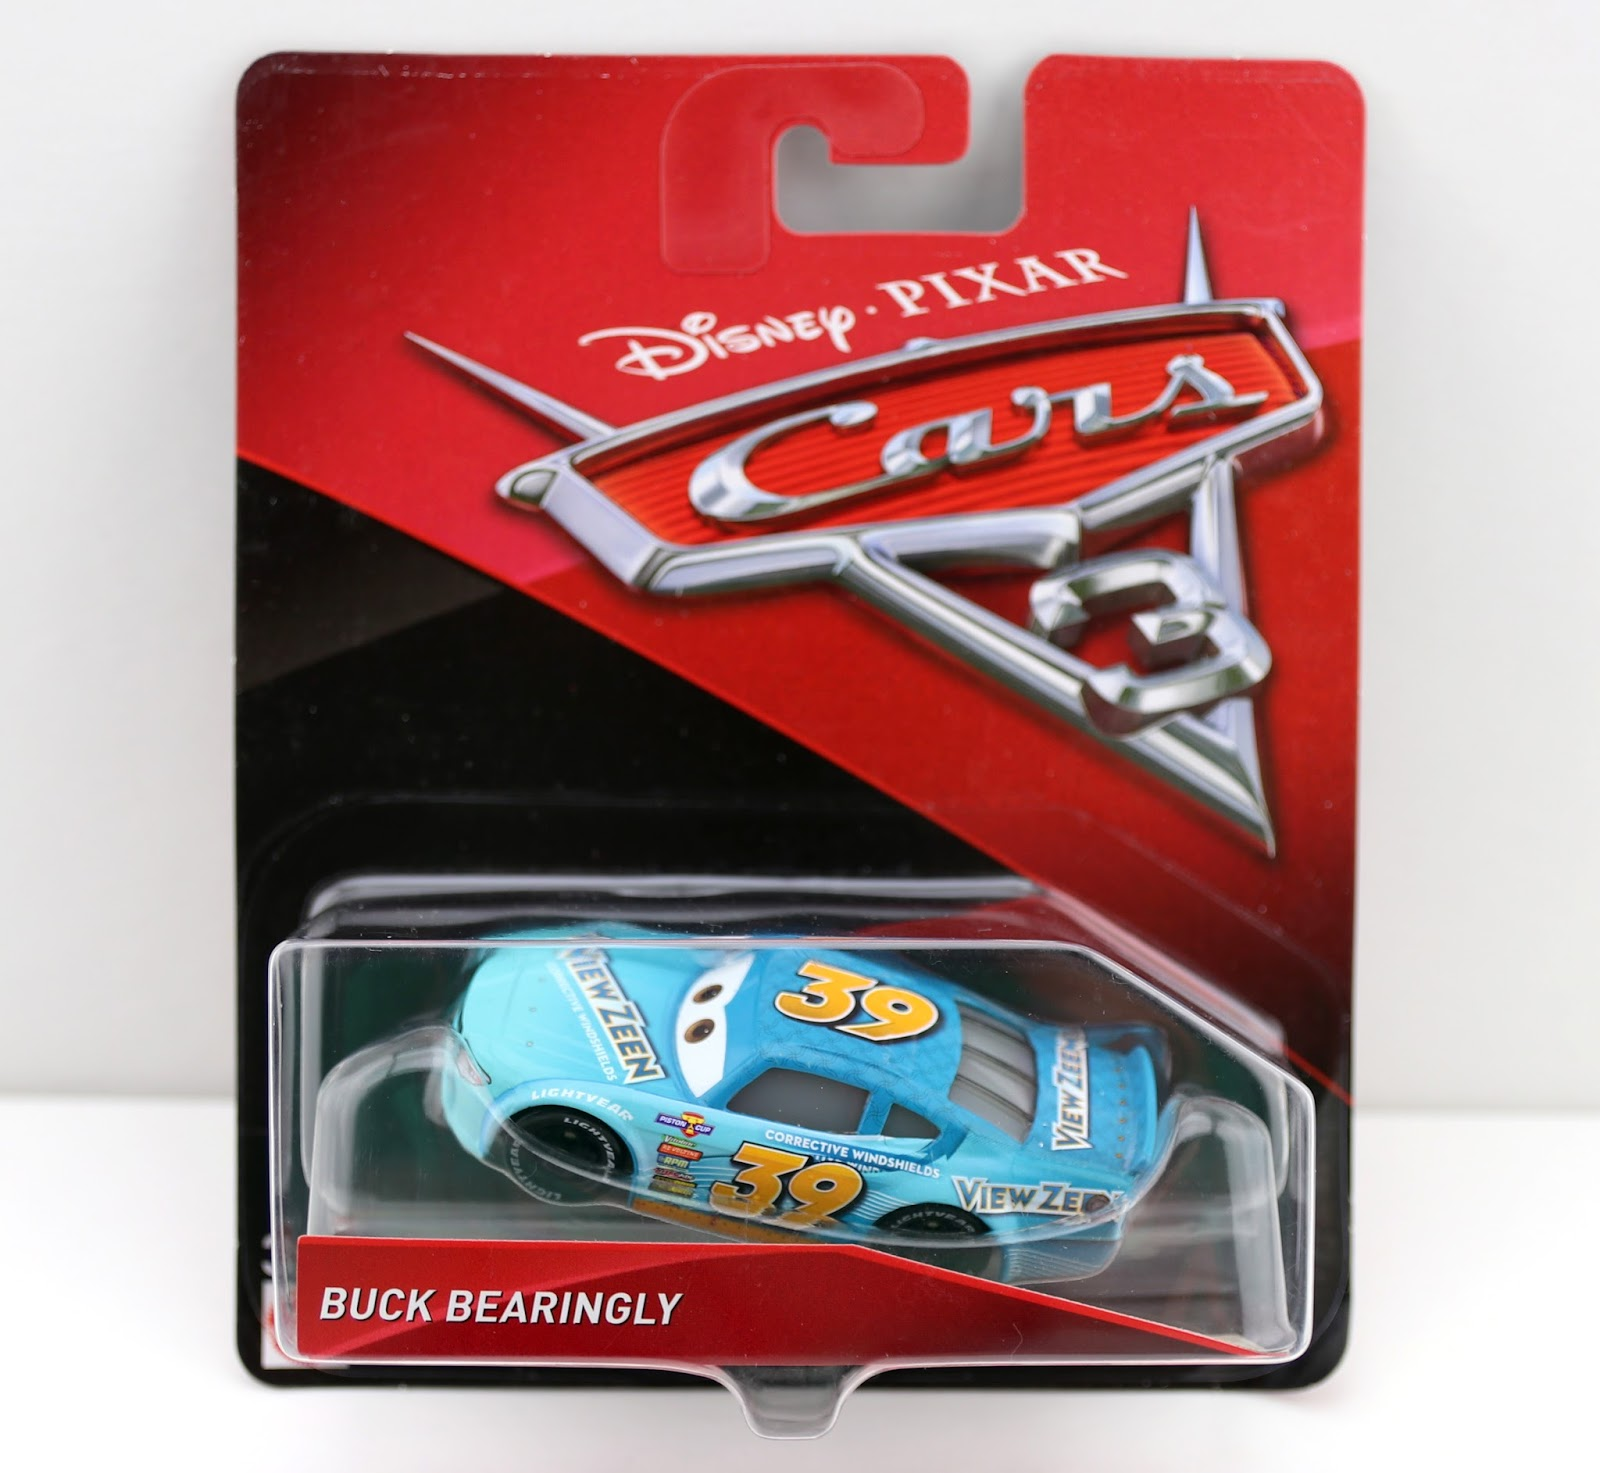 Cars 3 Buck Bearingly (View Zeen) mattel